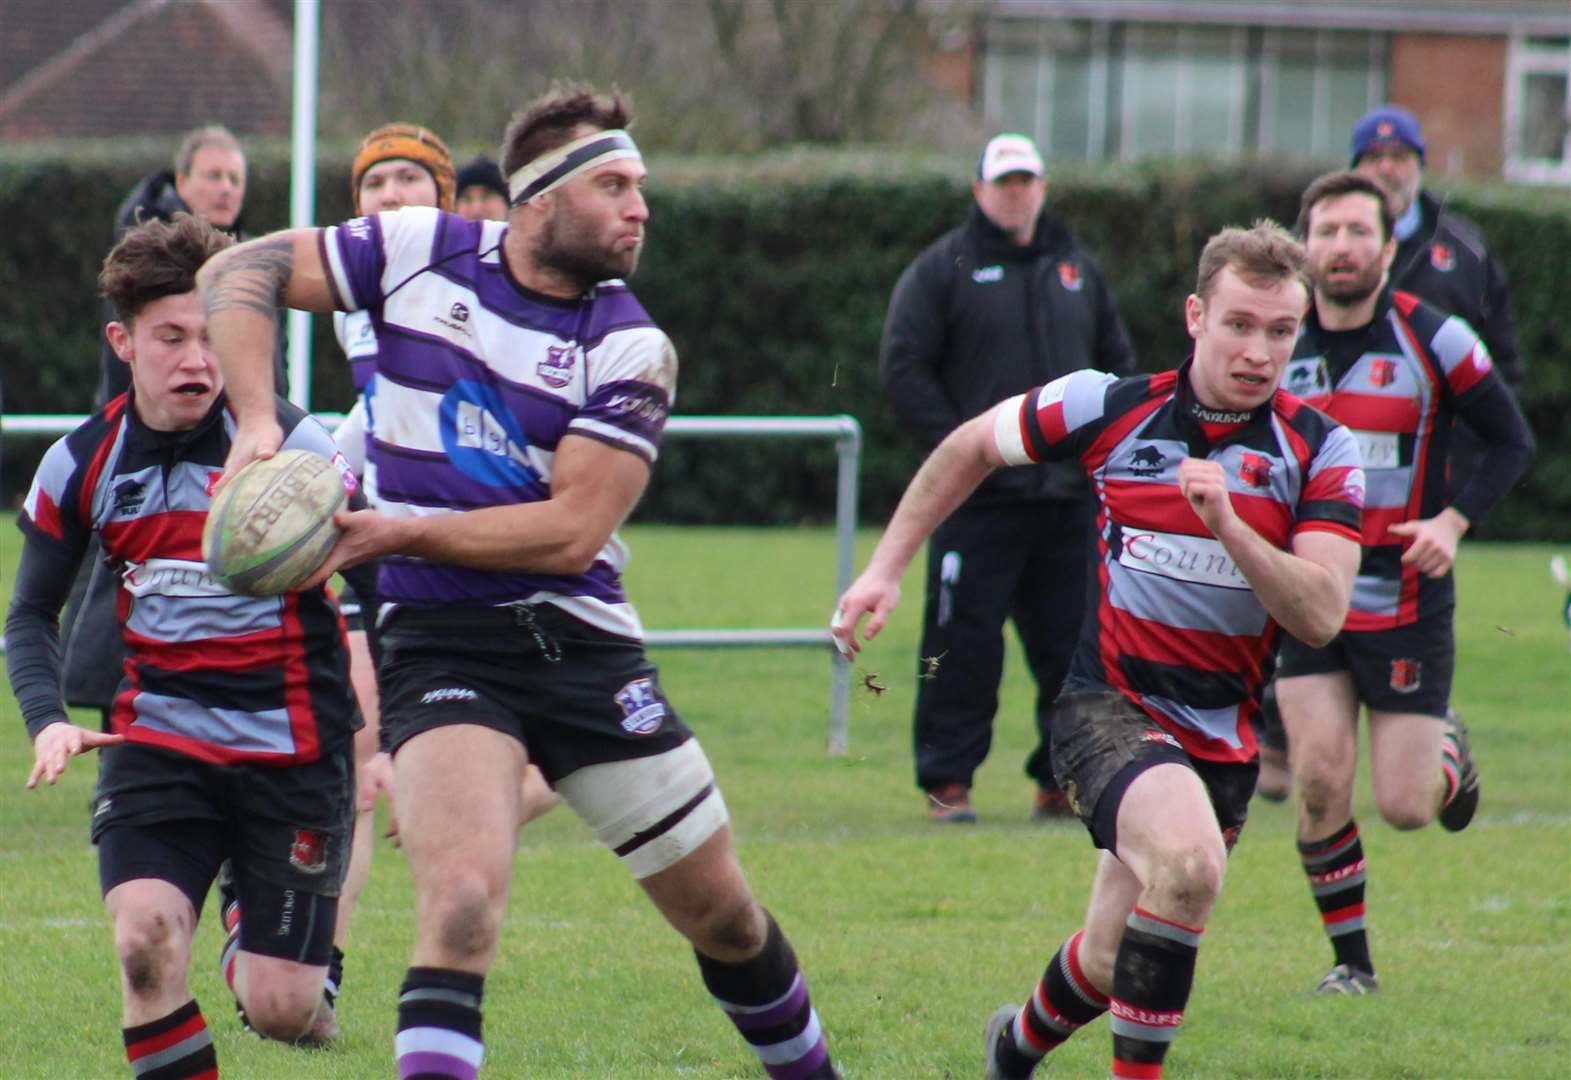 RUGBY: Strong first half performance sends Stamford to ninth successive victory